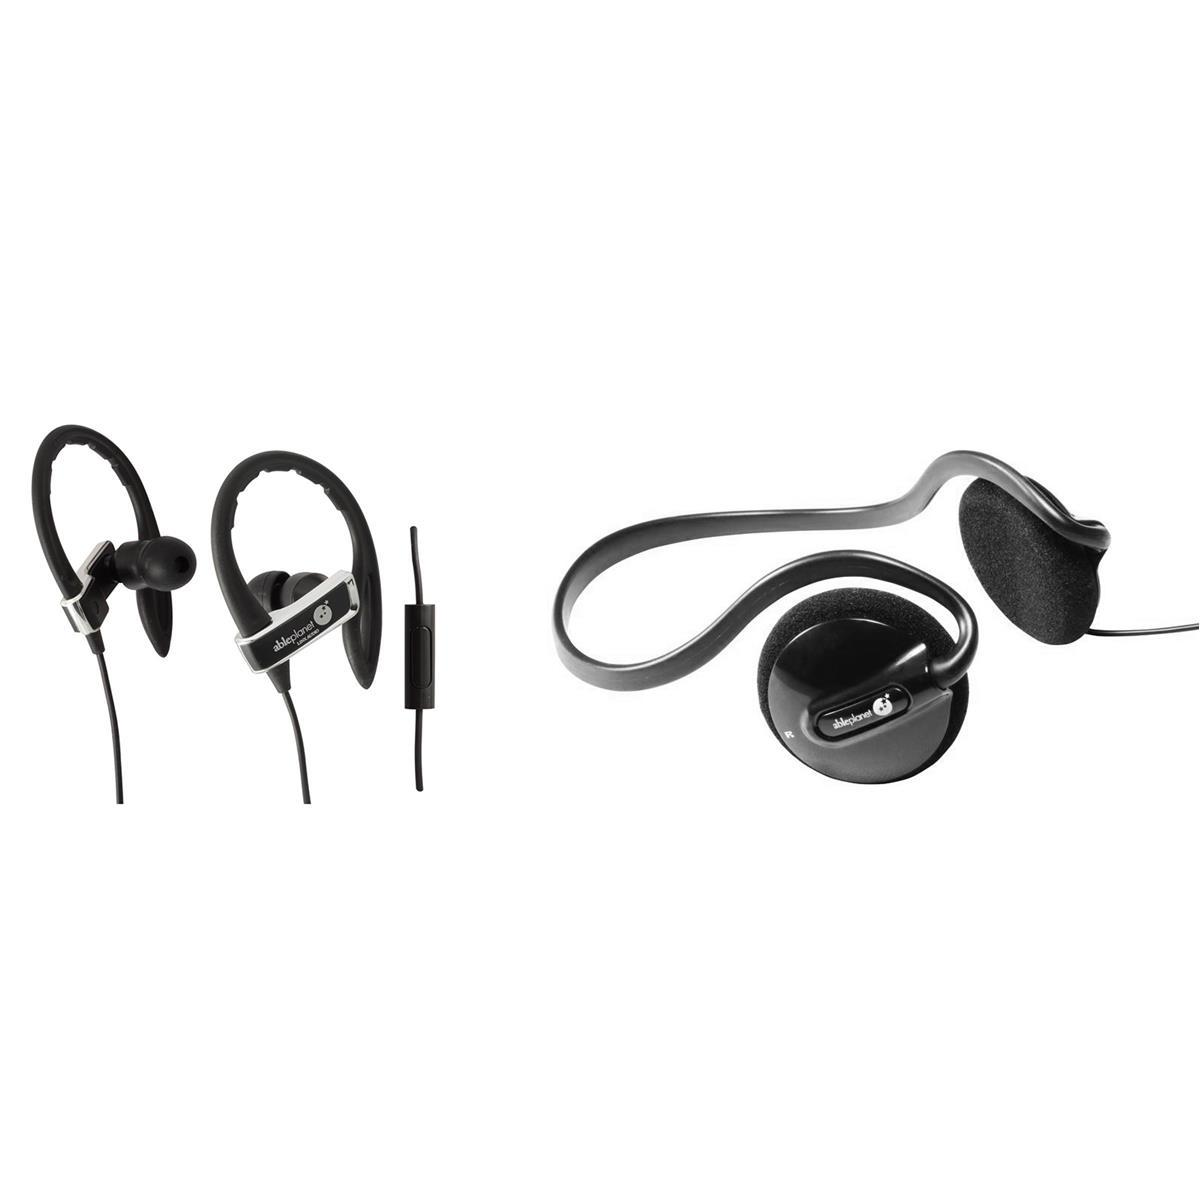 $27.99Able Planet SI350 True Fidelity Earphones with PS200BHB Headphones Bundle